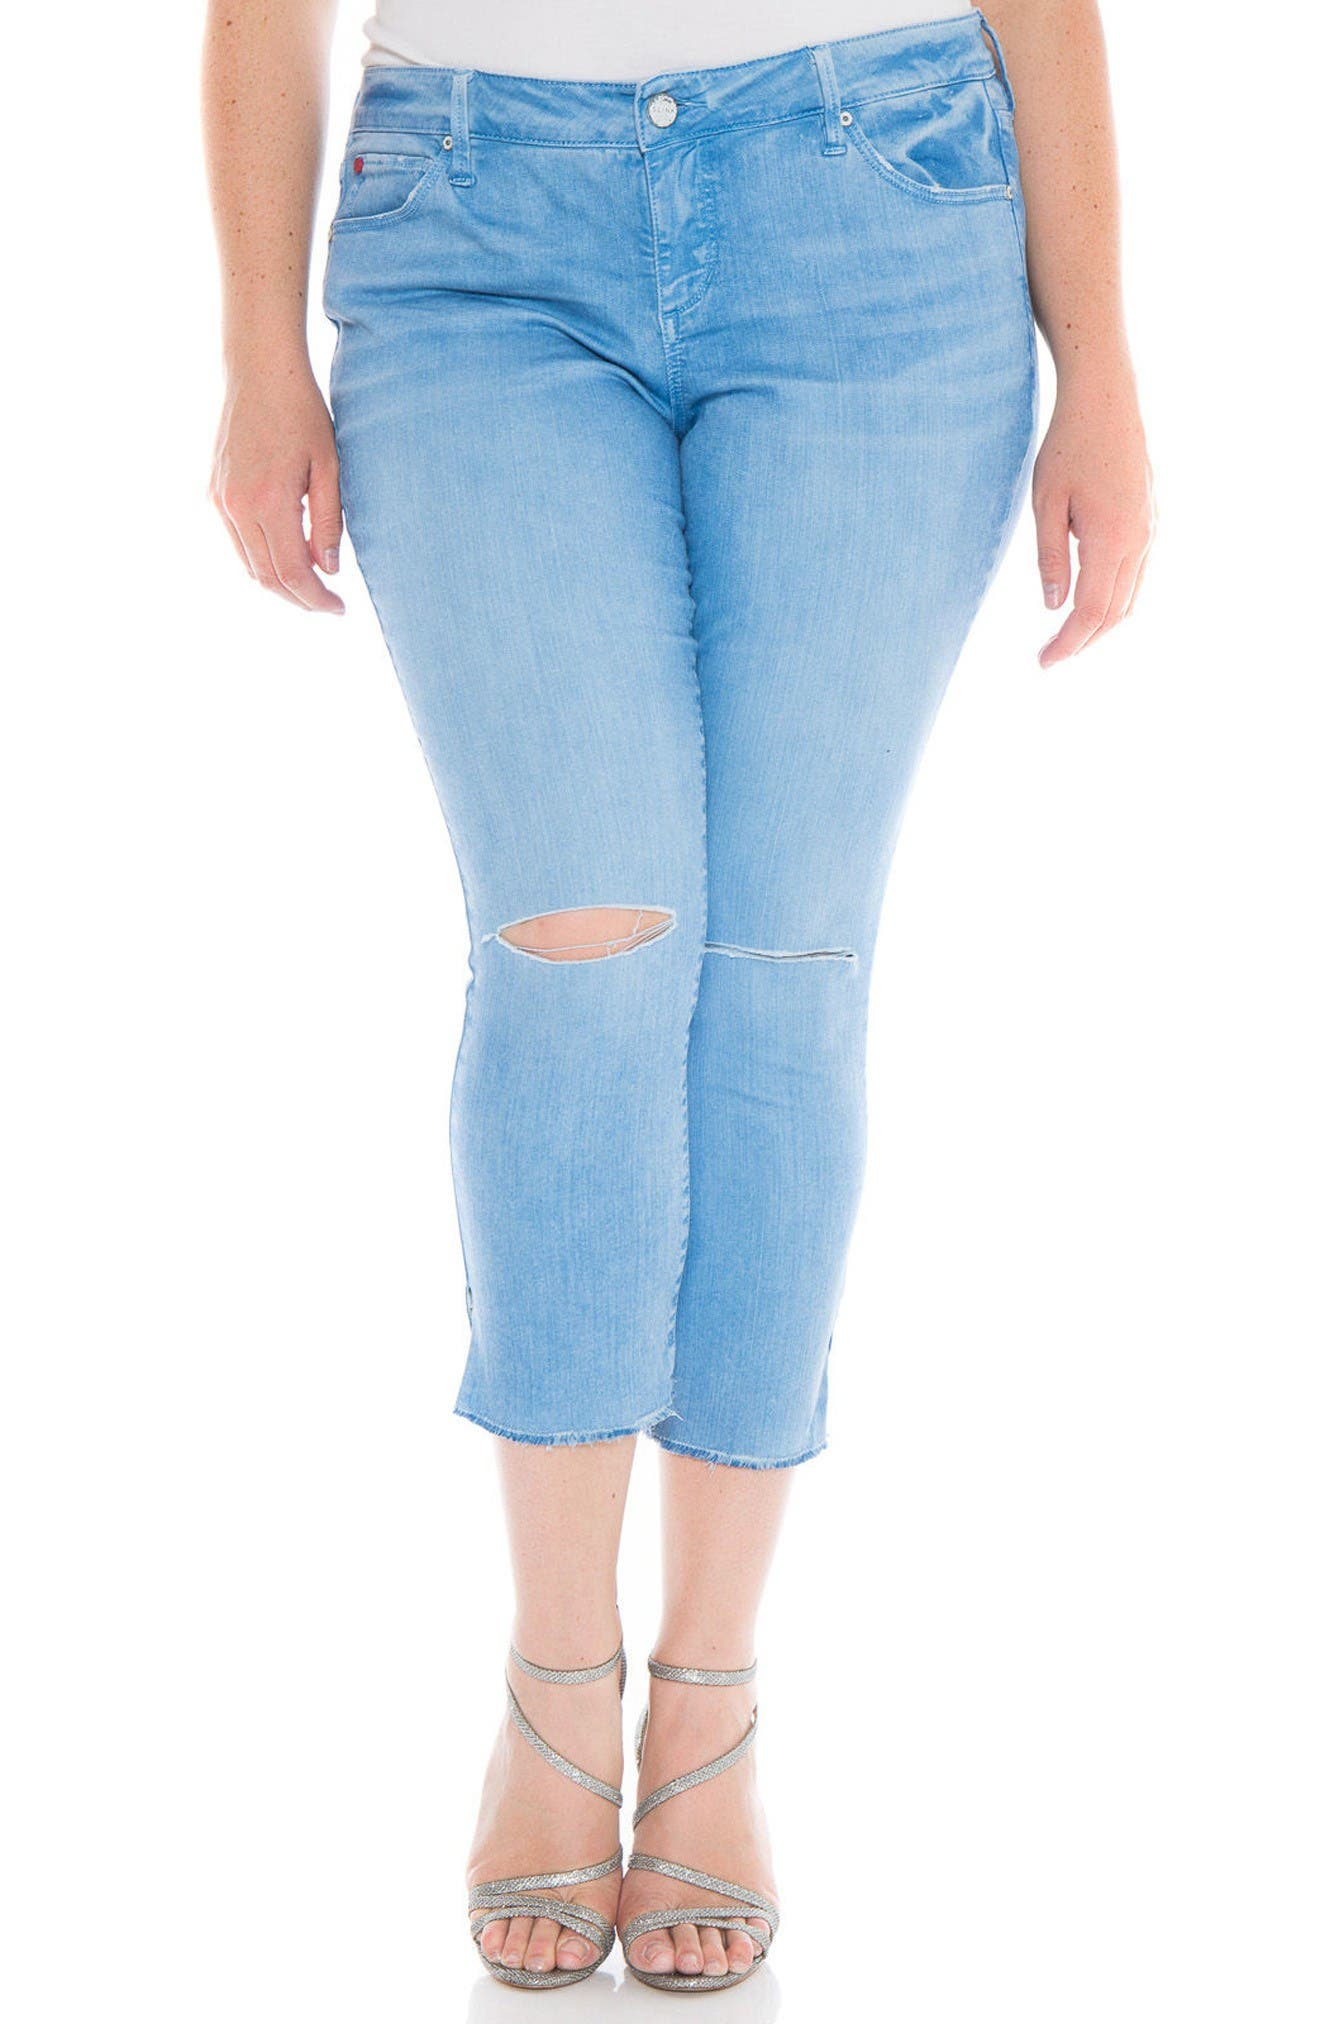 Main Image - SLINK Jeans Fray Hem Ripped Crop Skinny Jeans (Plus Size)